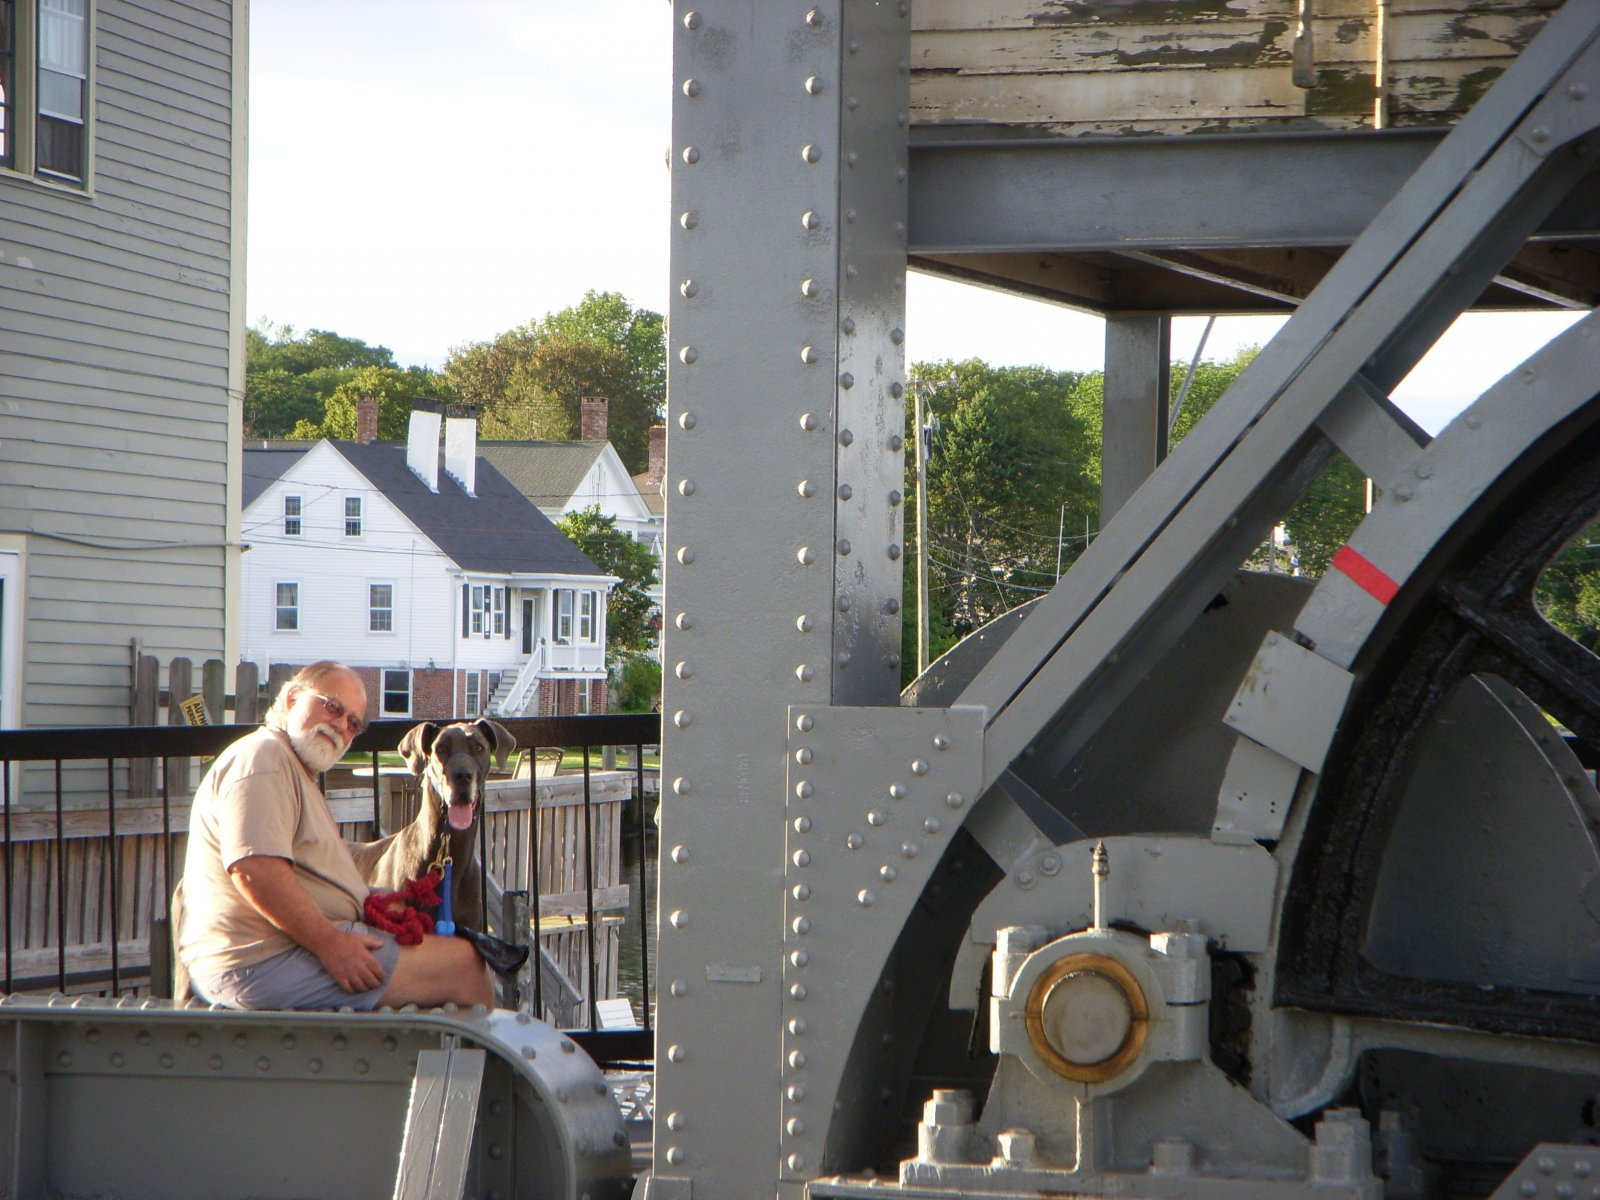 Click image for larger version  Name:Mystic, CT. Aug 2011 049.jpg Views:85 Size:305.8 KB ID:137942